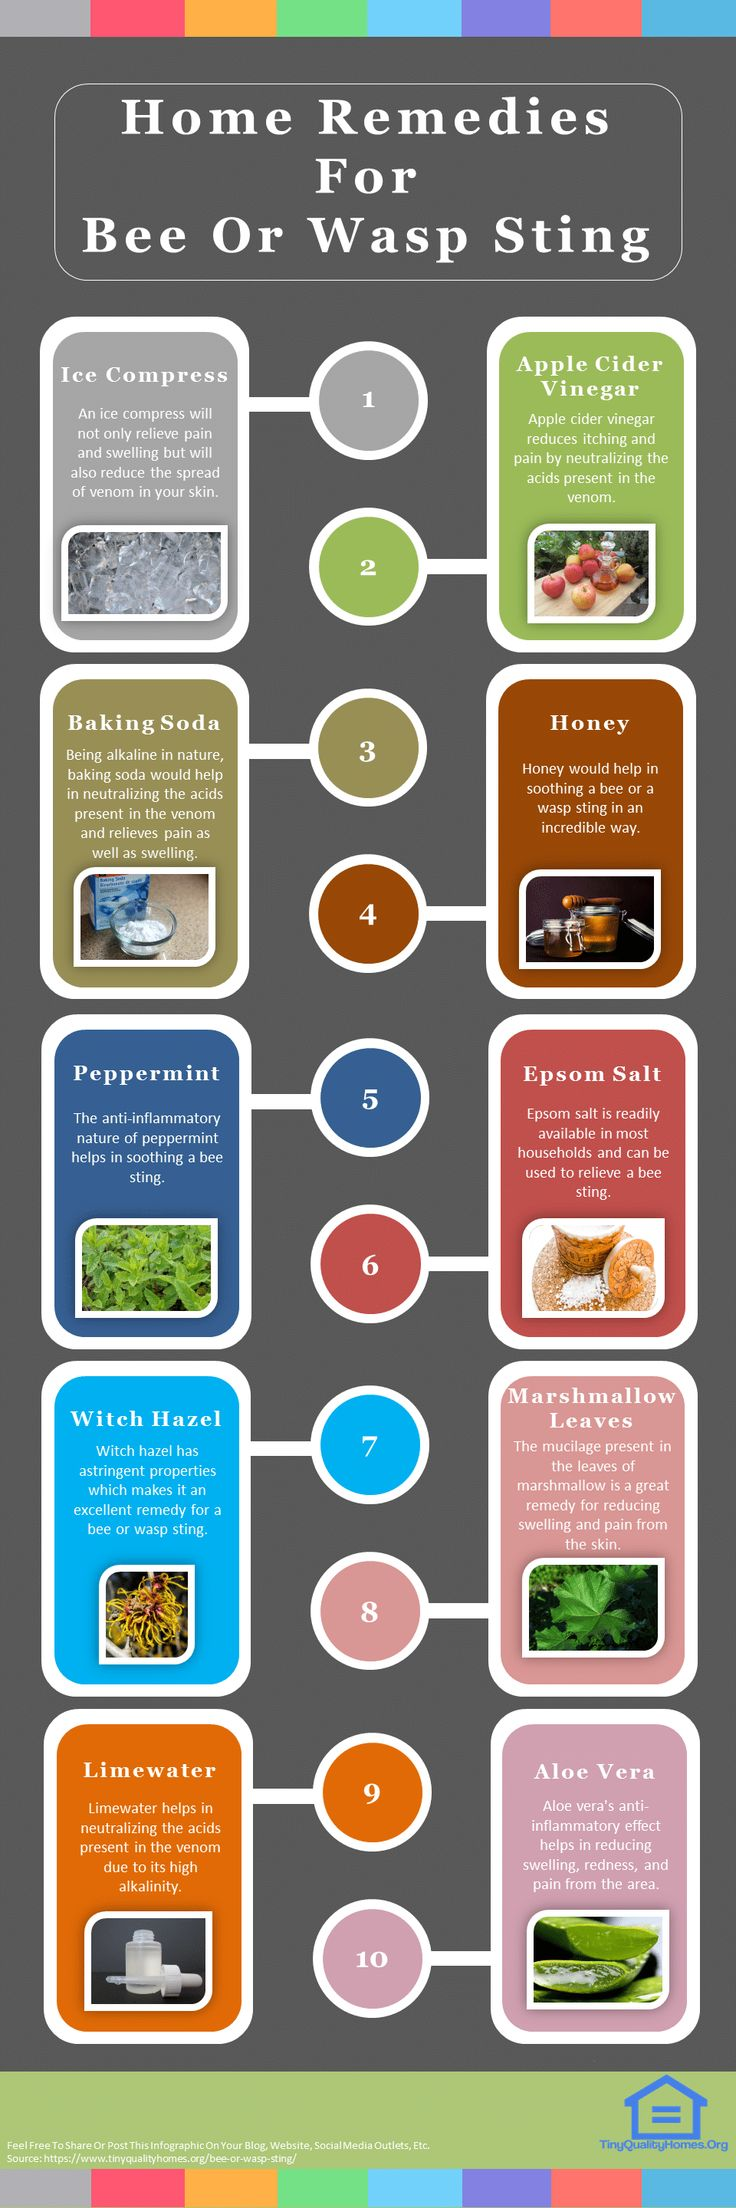 How To Treat A Bee Or Wasp Sting – 41 Home Remedies: This Article Discusses Ideas On The Following; Wasp Sting Infection, Wasp Sting Vinegar, Bee Sting Removal And Treatment, Wasp Sting Swelling After 48 Hours, Wasp Sting Vs Bee Sting, Delayed Reaction To Bee Sting, How Long Does A Bee Sting Last, Bee And Wasp Stings Mustard Applied Topically, Bee & Wasp Sting: Relief And Remedies, Baking Soda For Bee/Wasp Sting Swelling, Essential Oil Remedies For Stings, Etc.